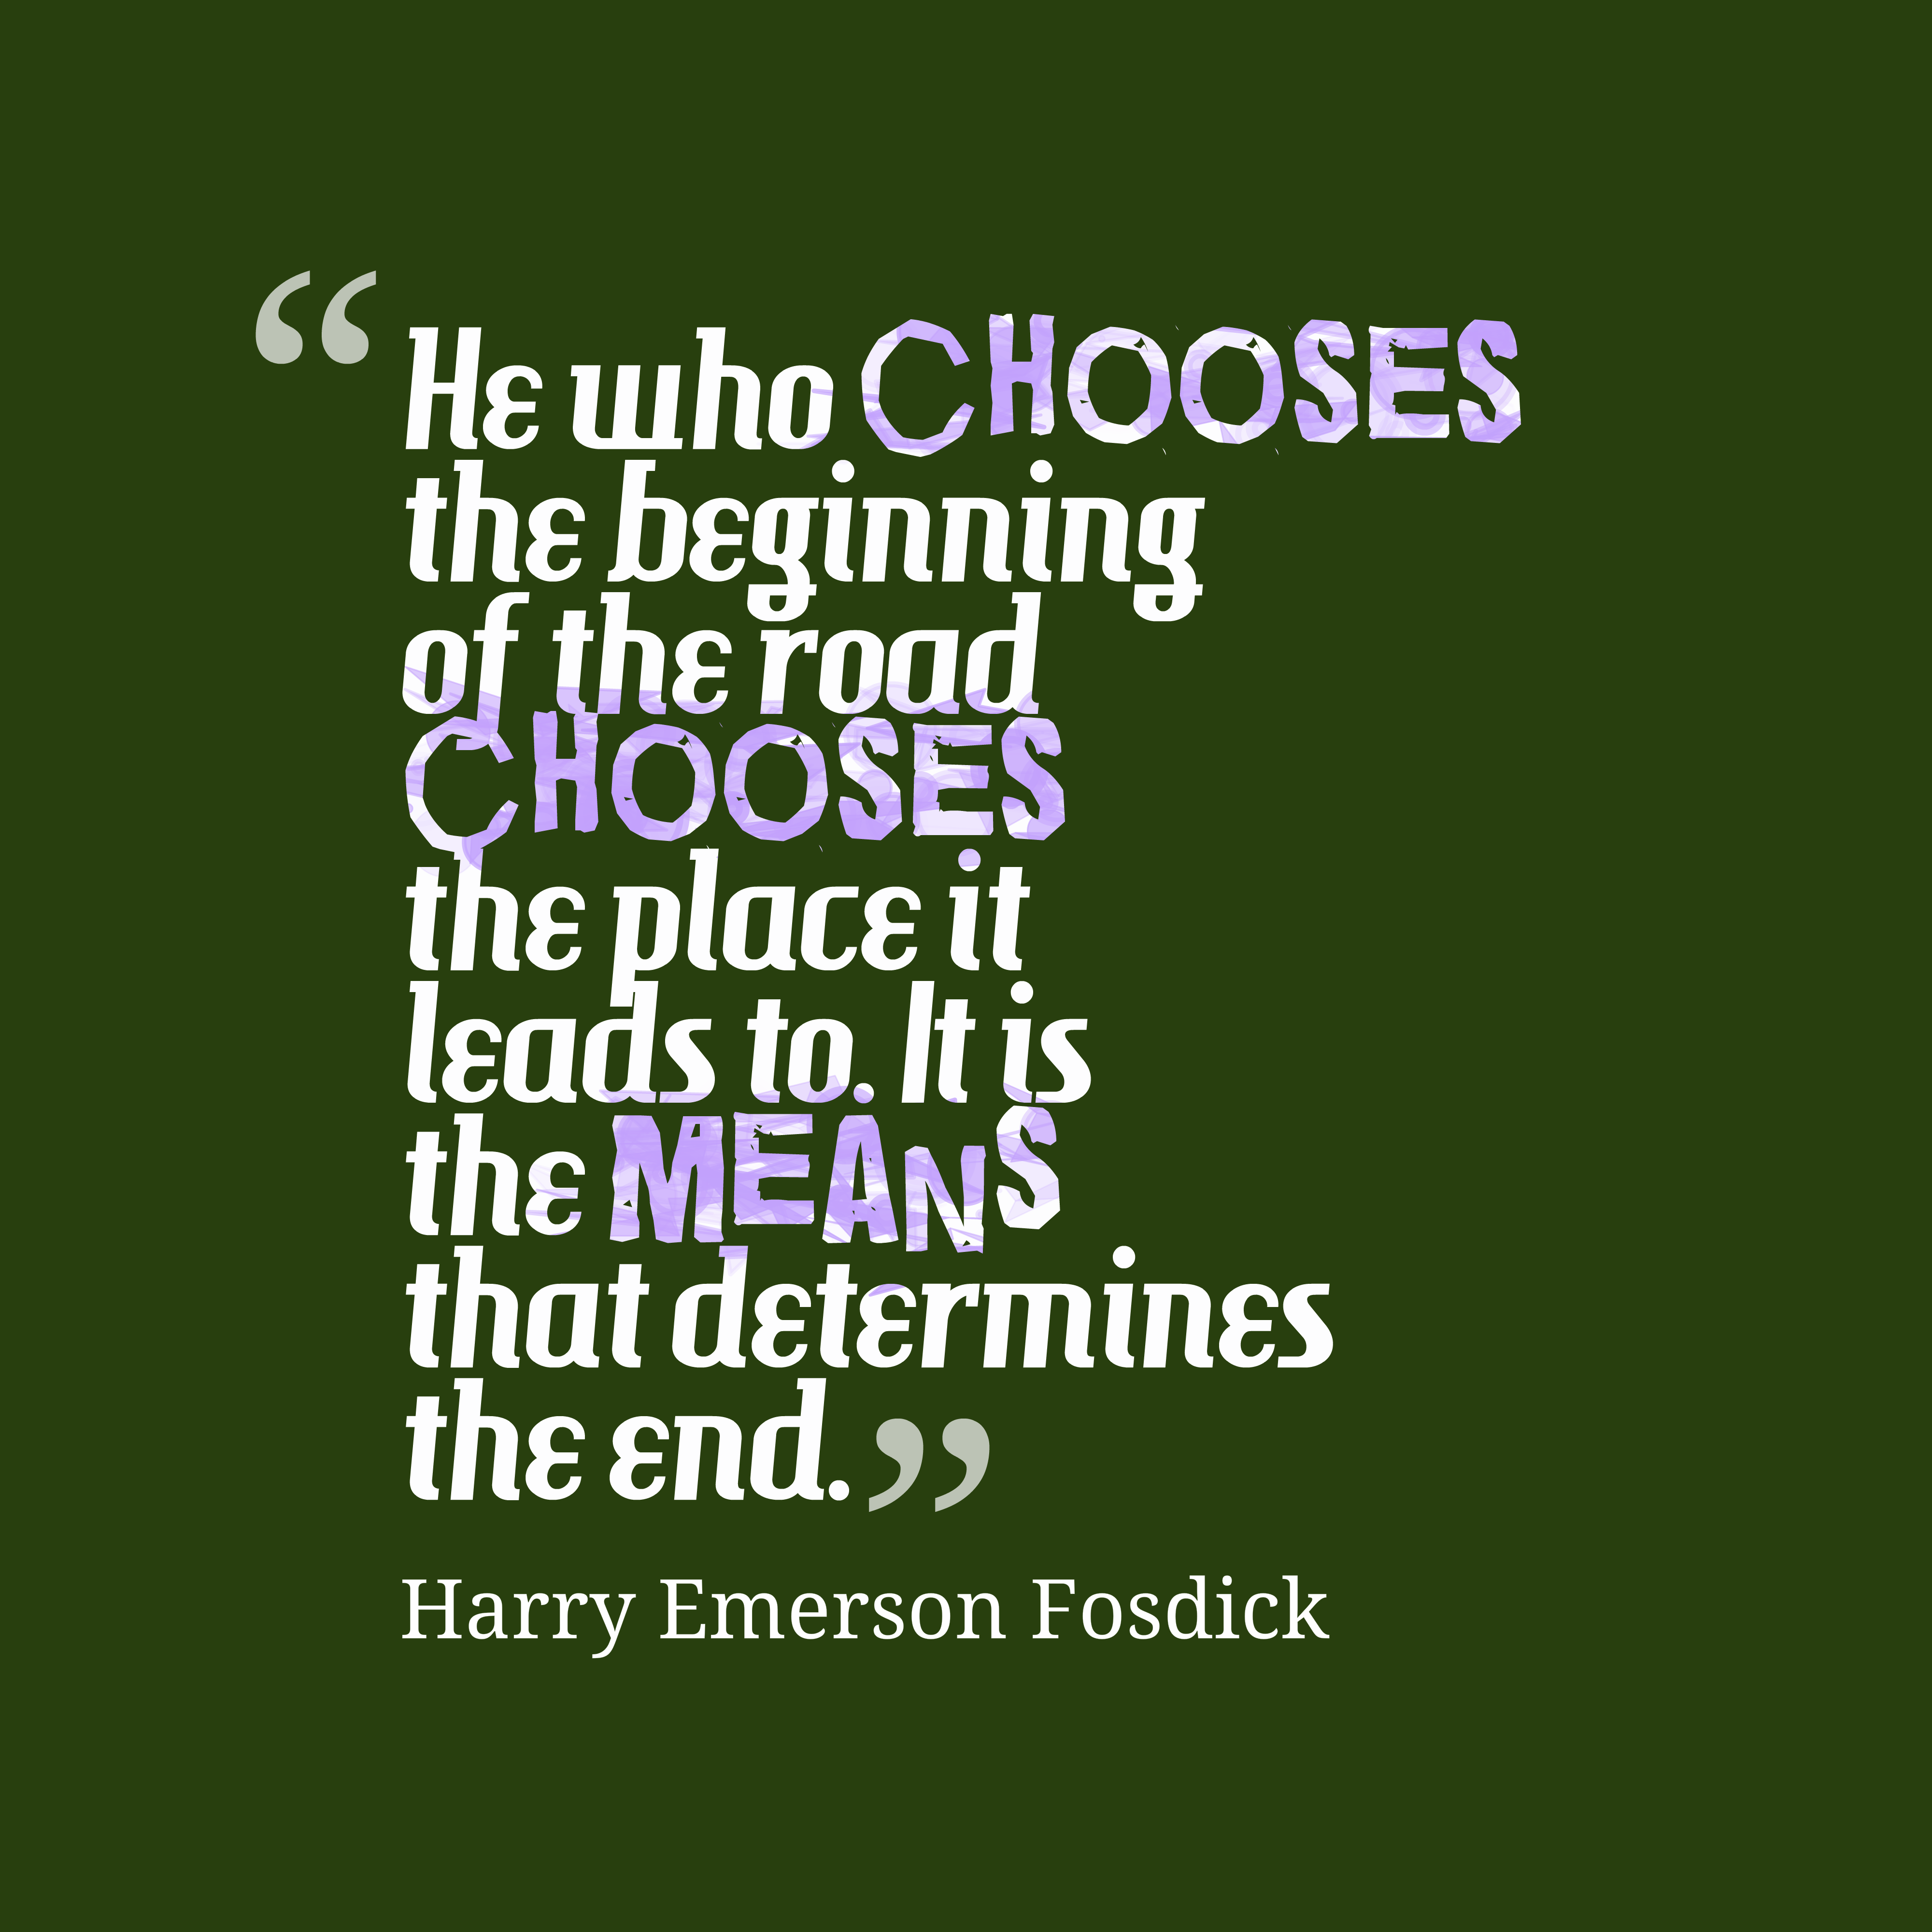 Quotes image of He who chooses the beginning of the road chooses the place it leads to. It is the means that determines the end.